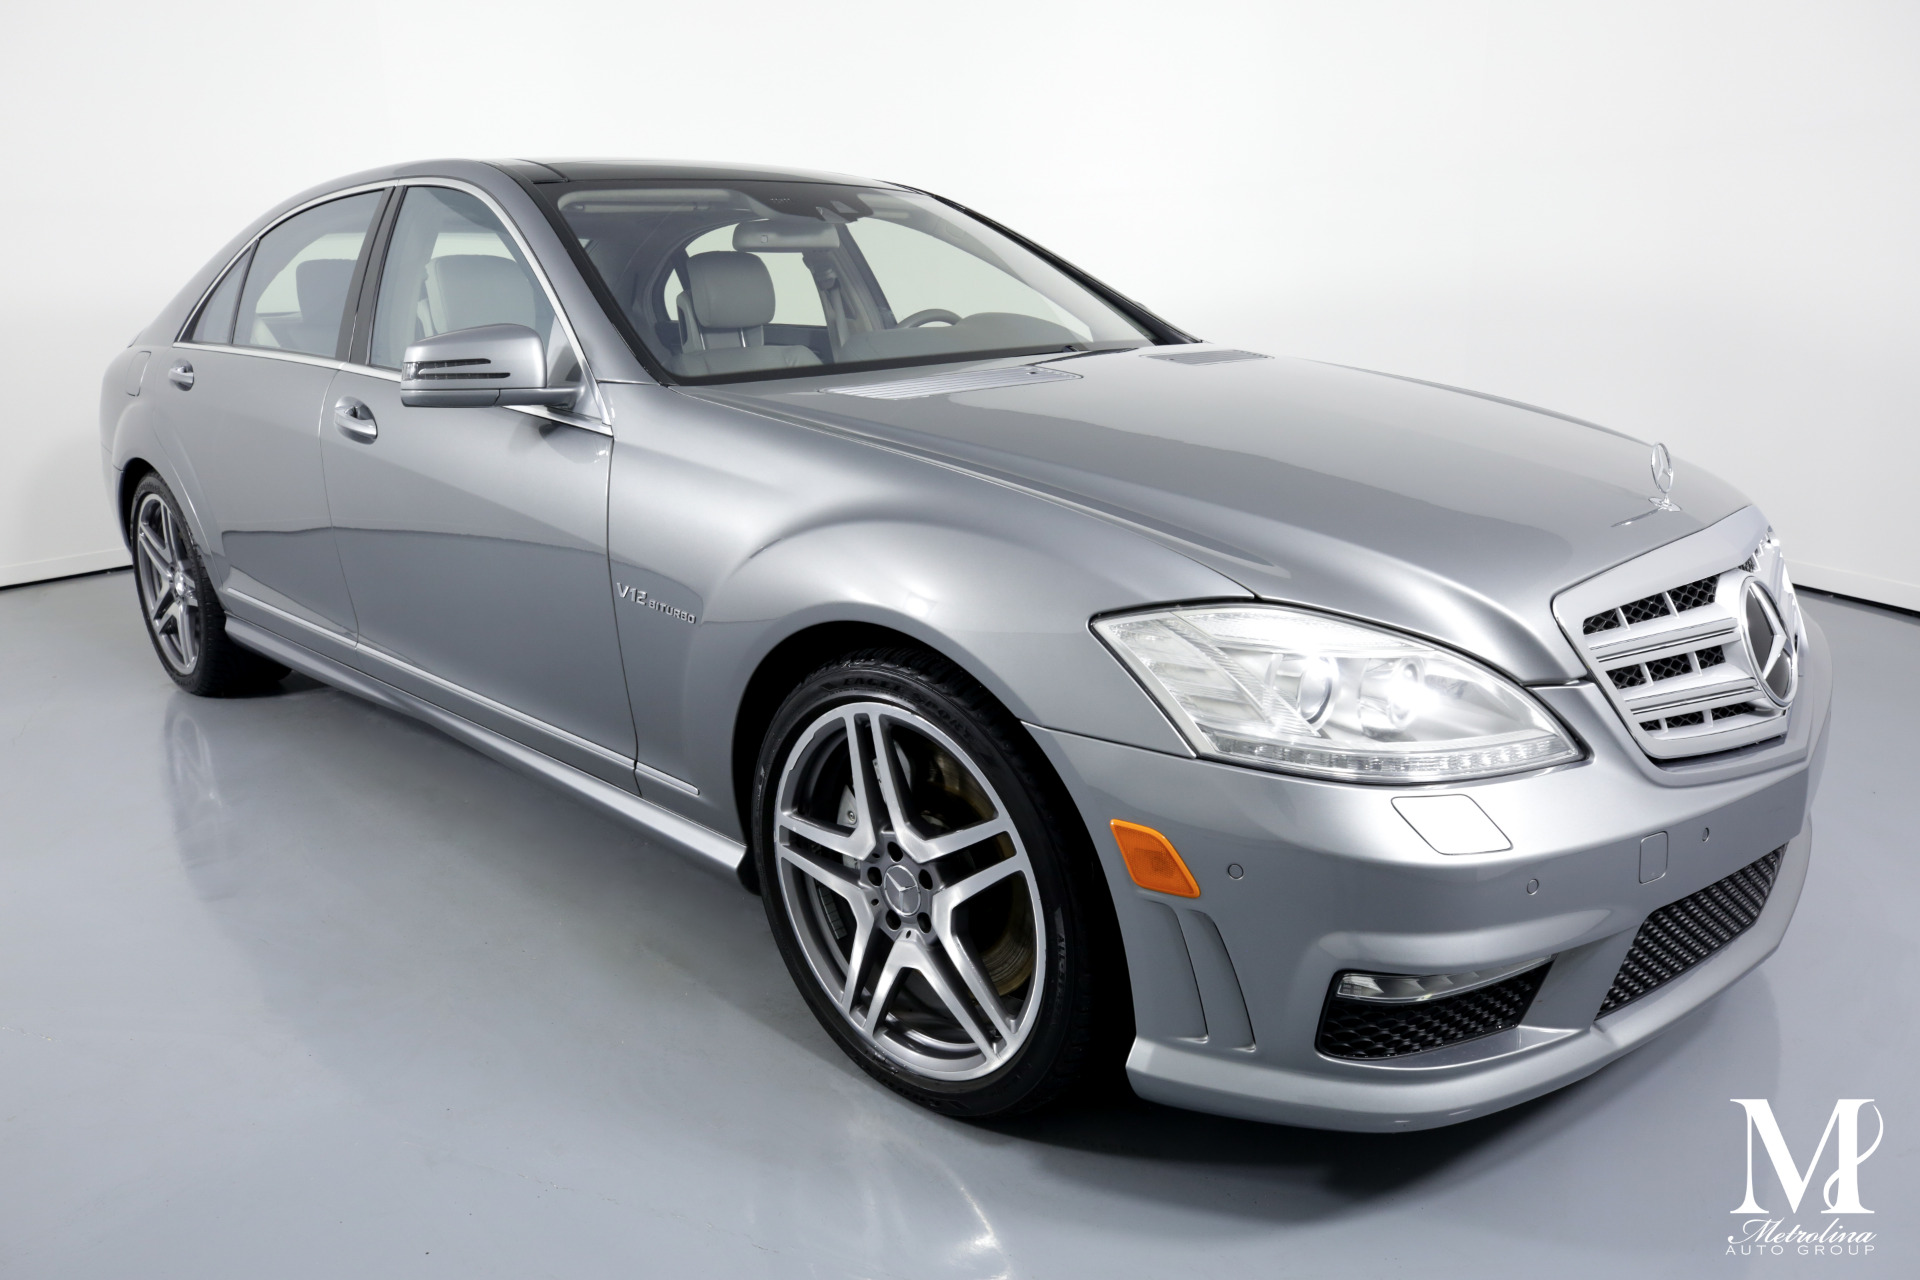 Used 2010 Mercedes-Benz S-Class S 65 AMG for sale Sold at Metrolina Auto Group in Charlotte NC 28217 - 2